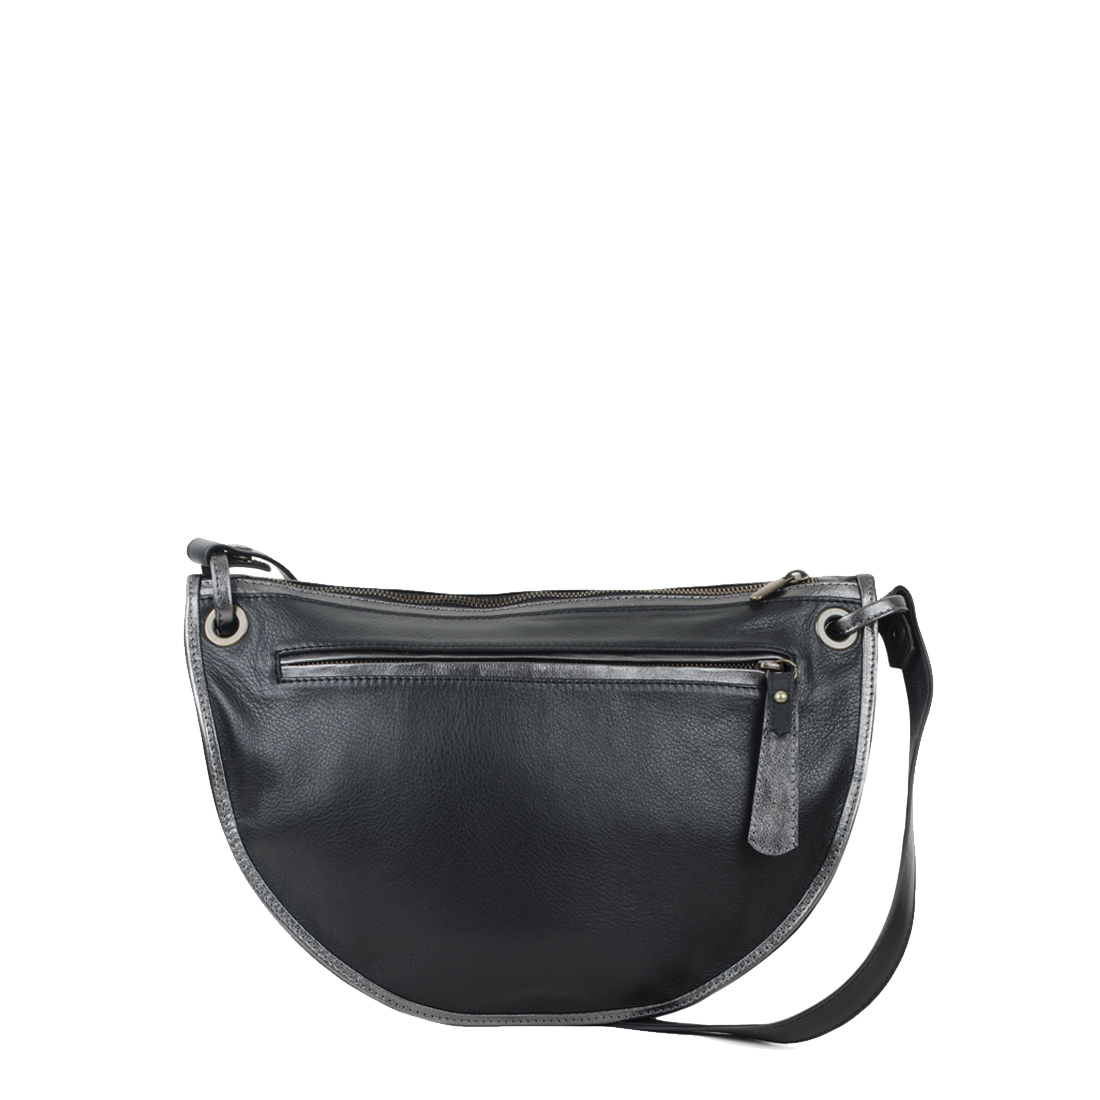 Rachel Black Leather Across Body Bag